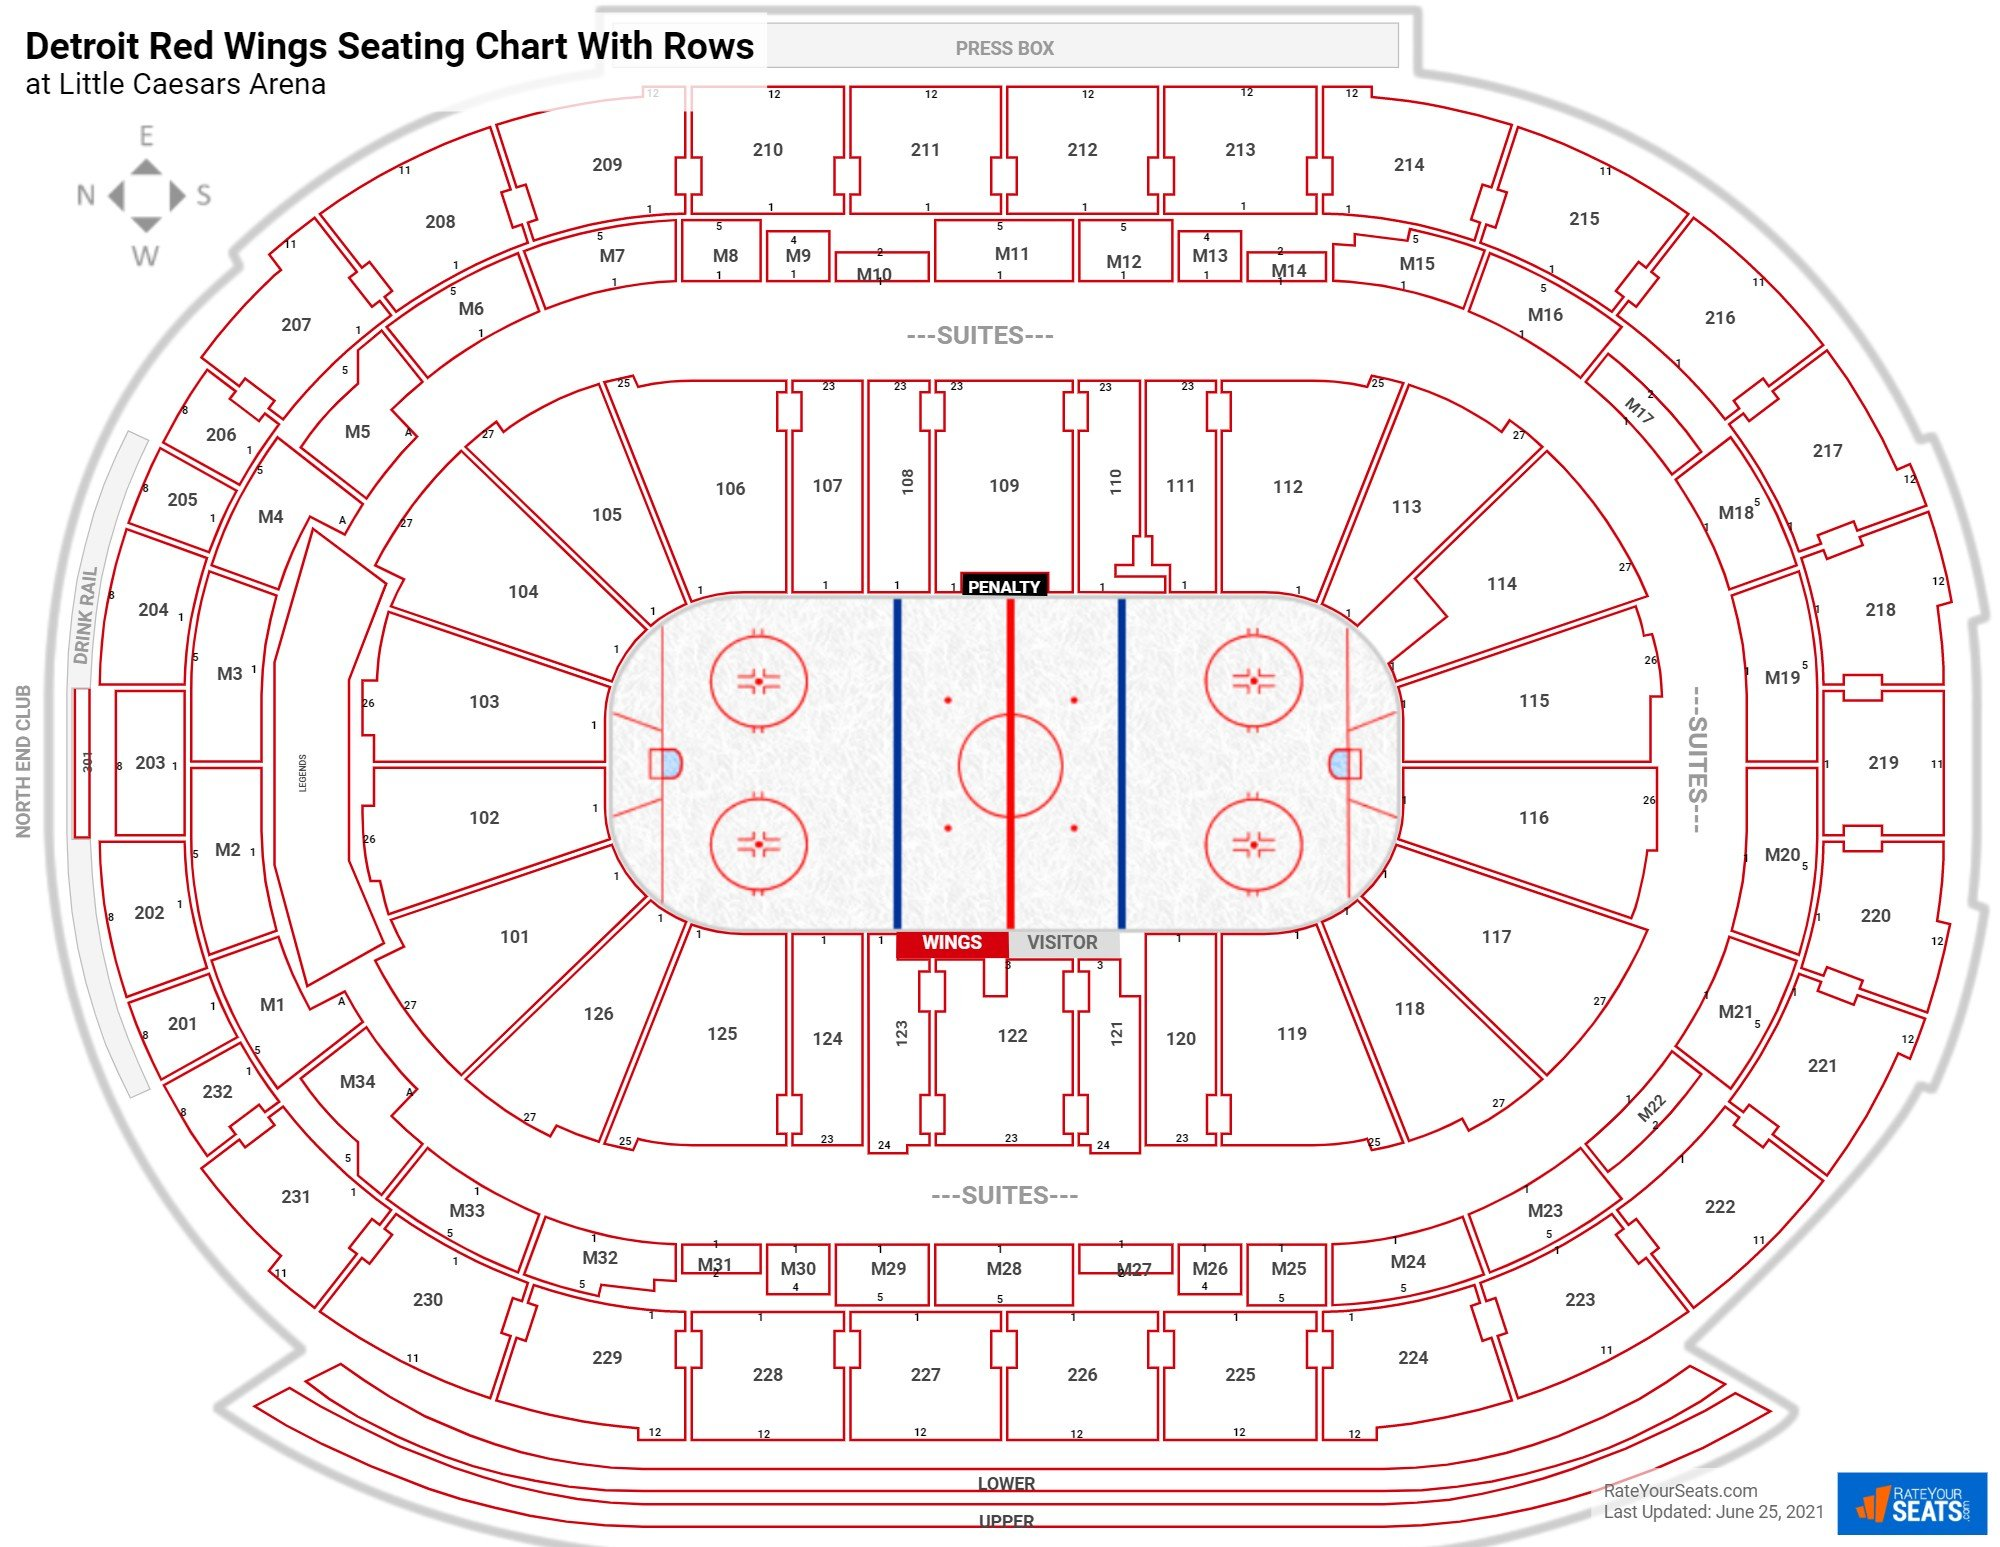 Little Caesars Arena seating chart with rows hockey